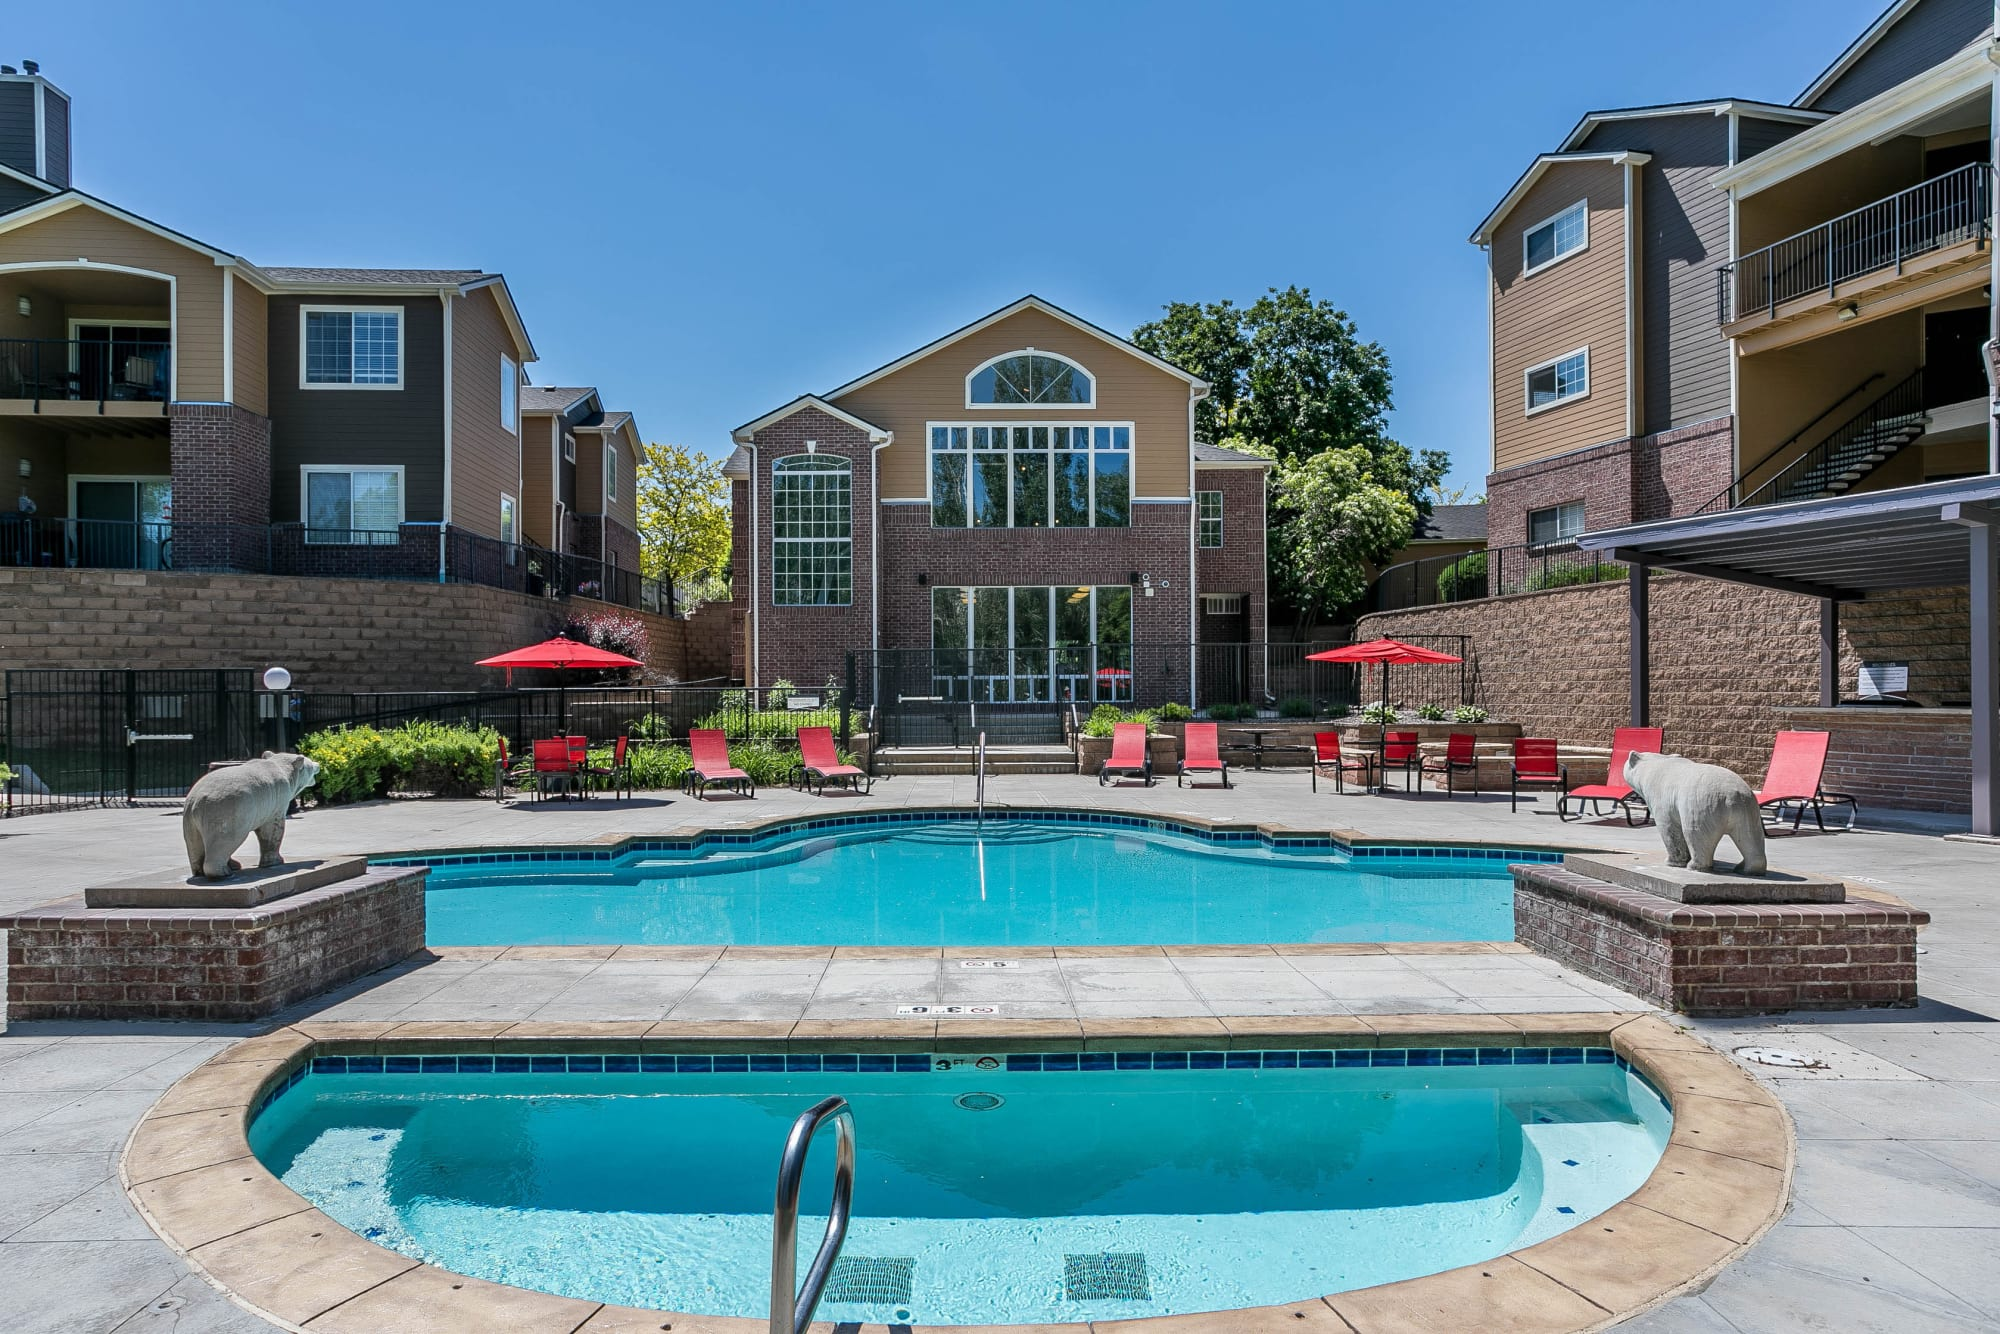 spa and pool with lounges, umbrellas, BBQ and Corn hole